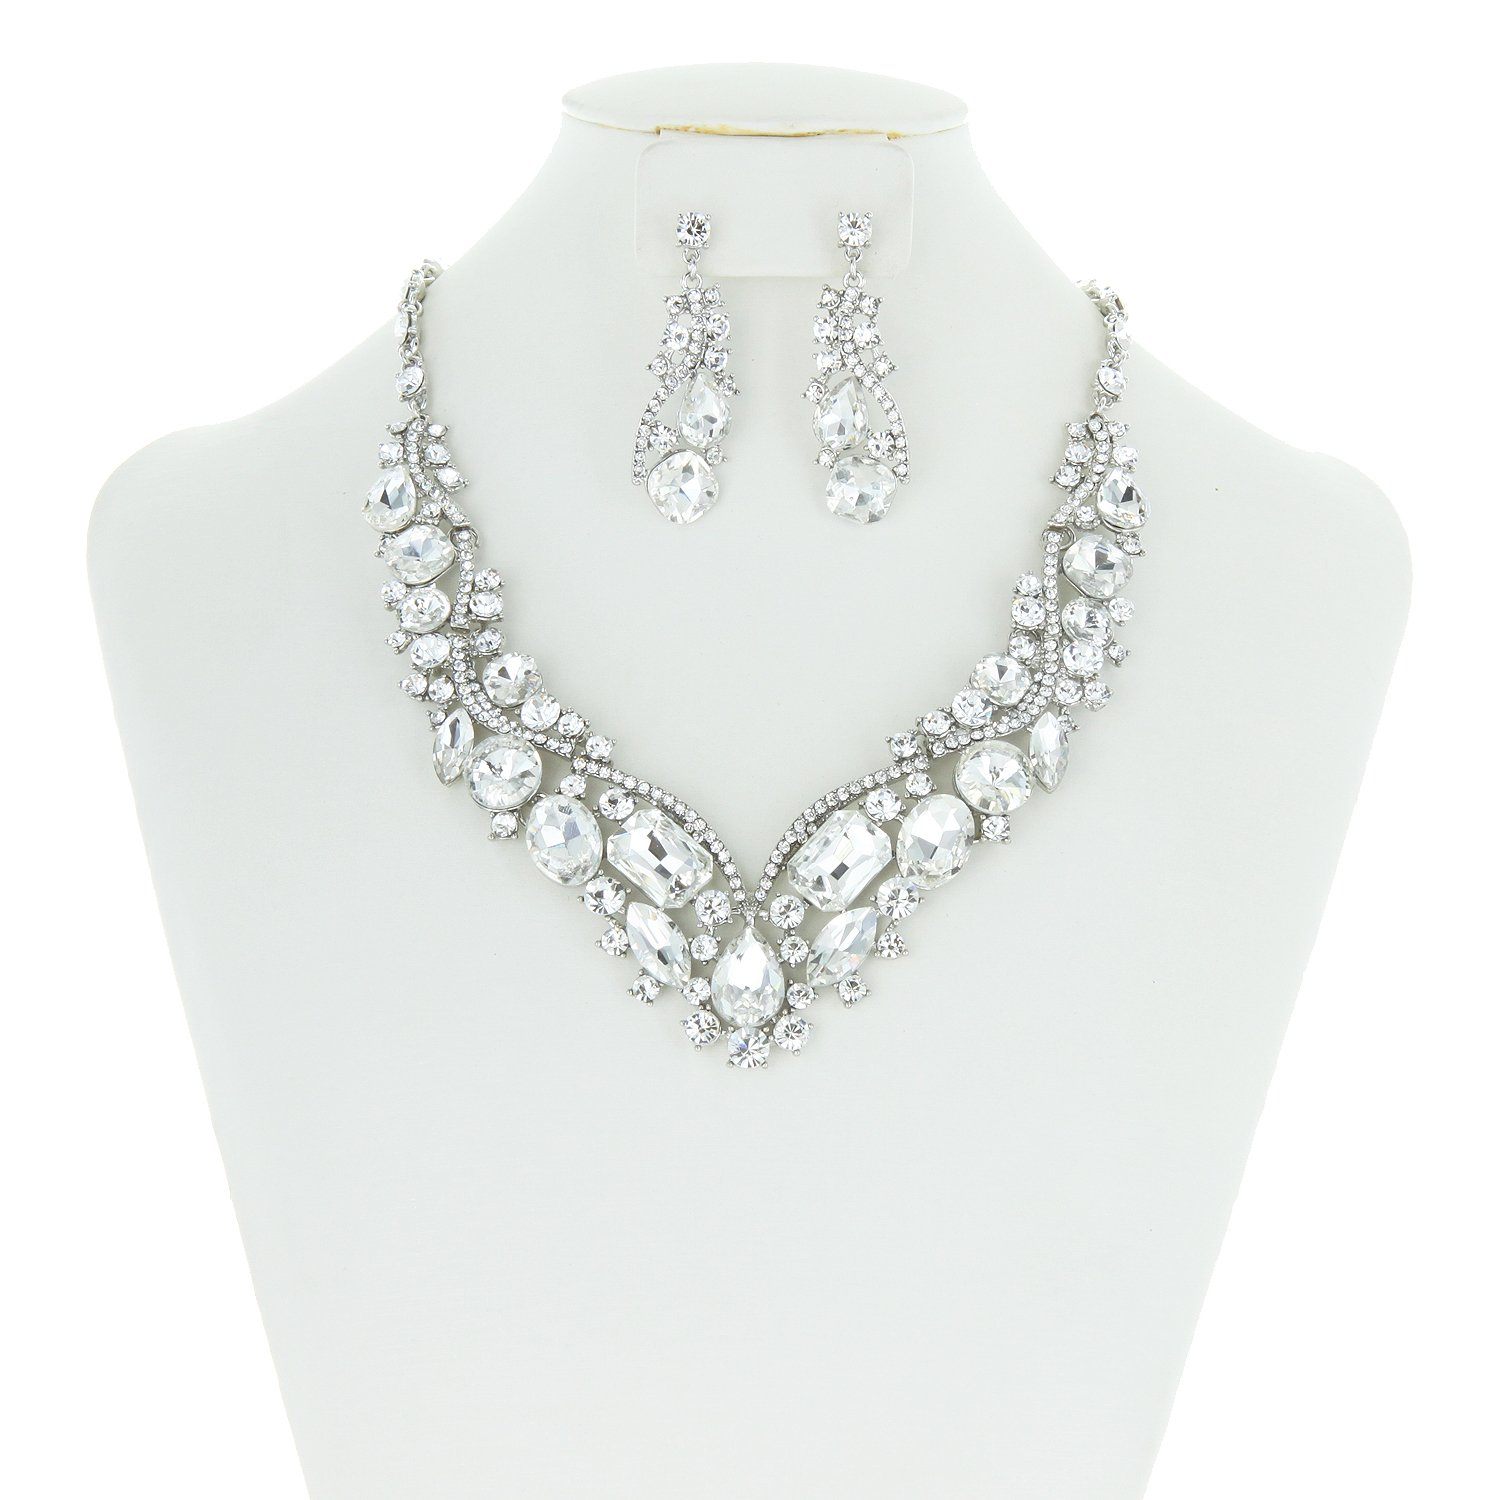 SP Sophia Collection Women's Wedding Bridal Austrian Crystal Necklace and Earrings Jewelry Set in Silver